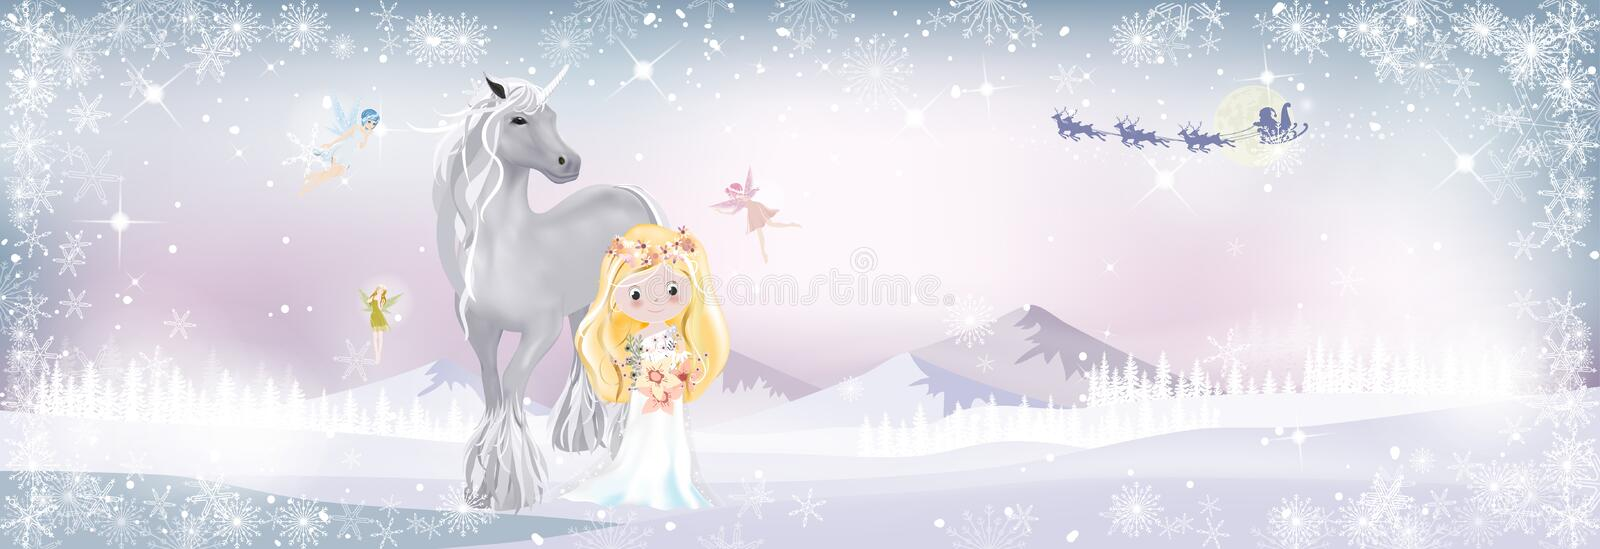 Fantasy landscape winter wonderland with Cute princess and unicorn in magic forest with little fairies flying with Santa Claus stock illustration